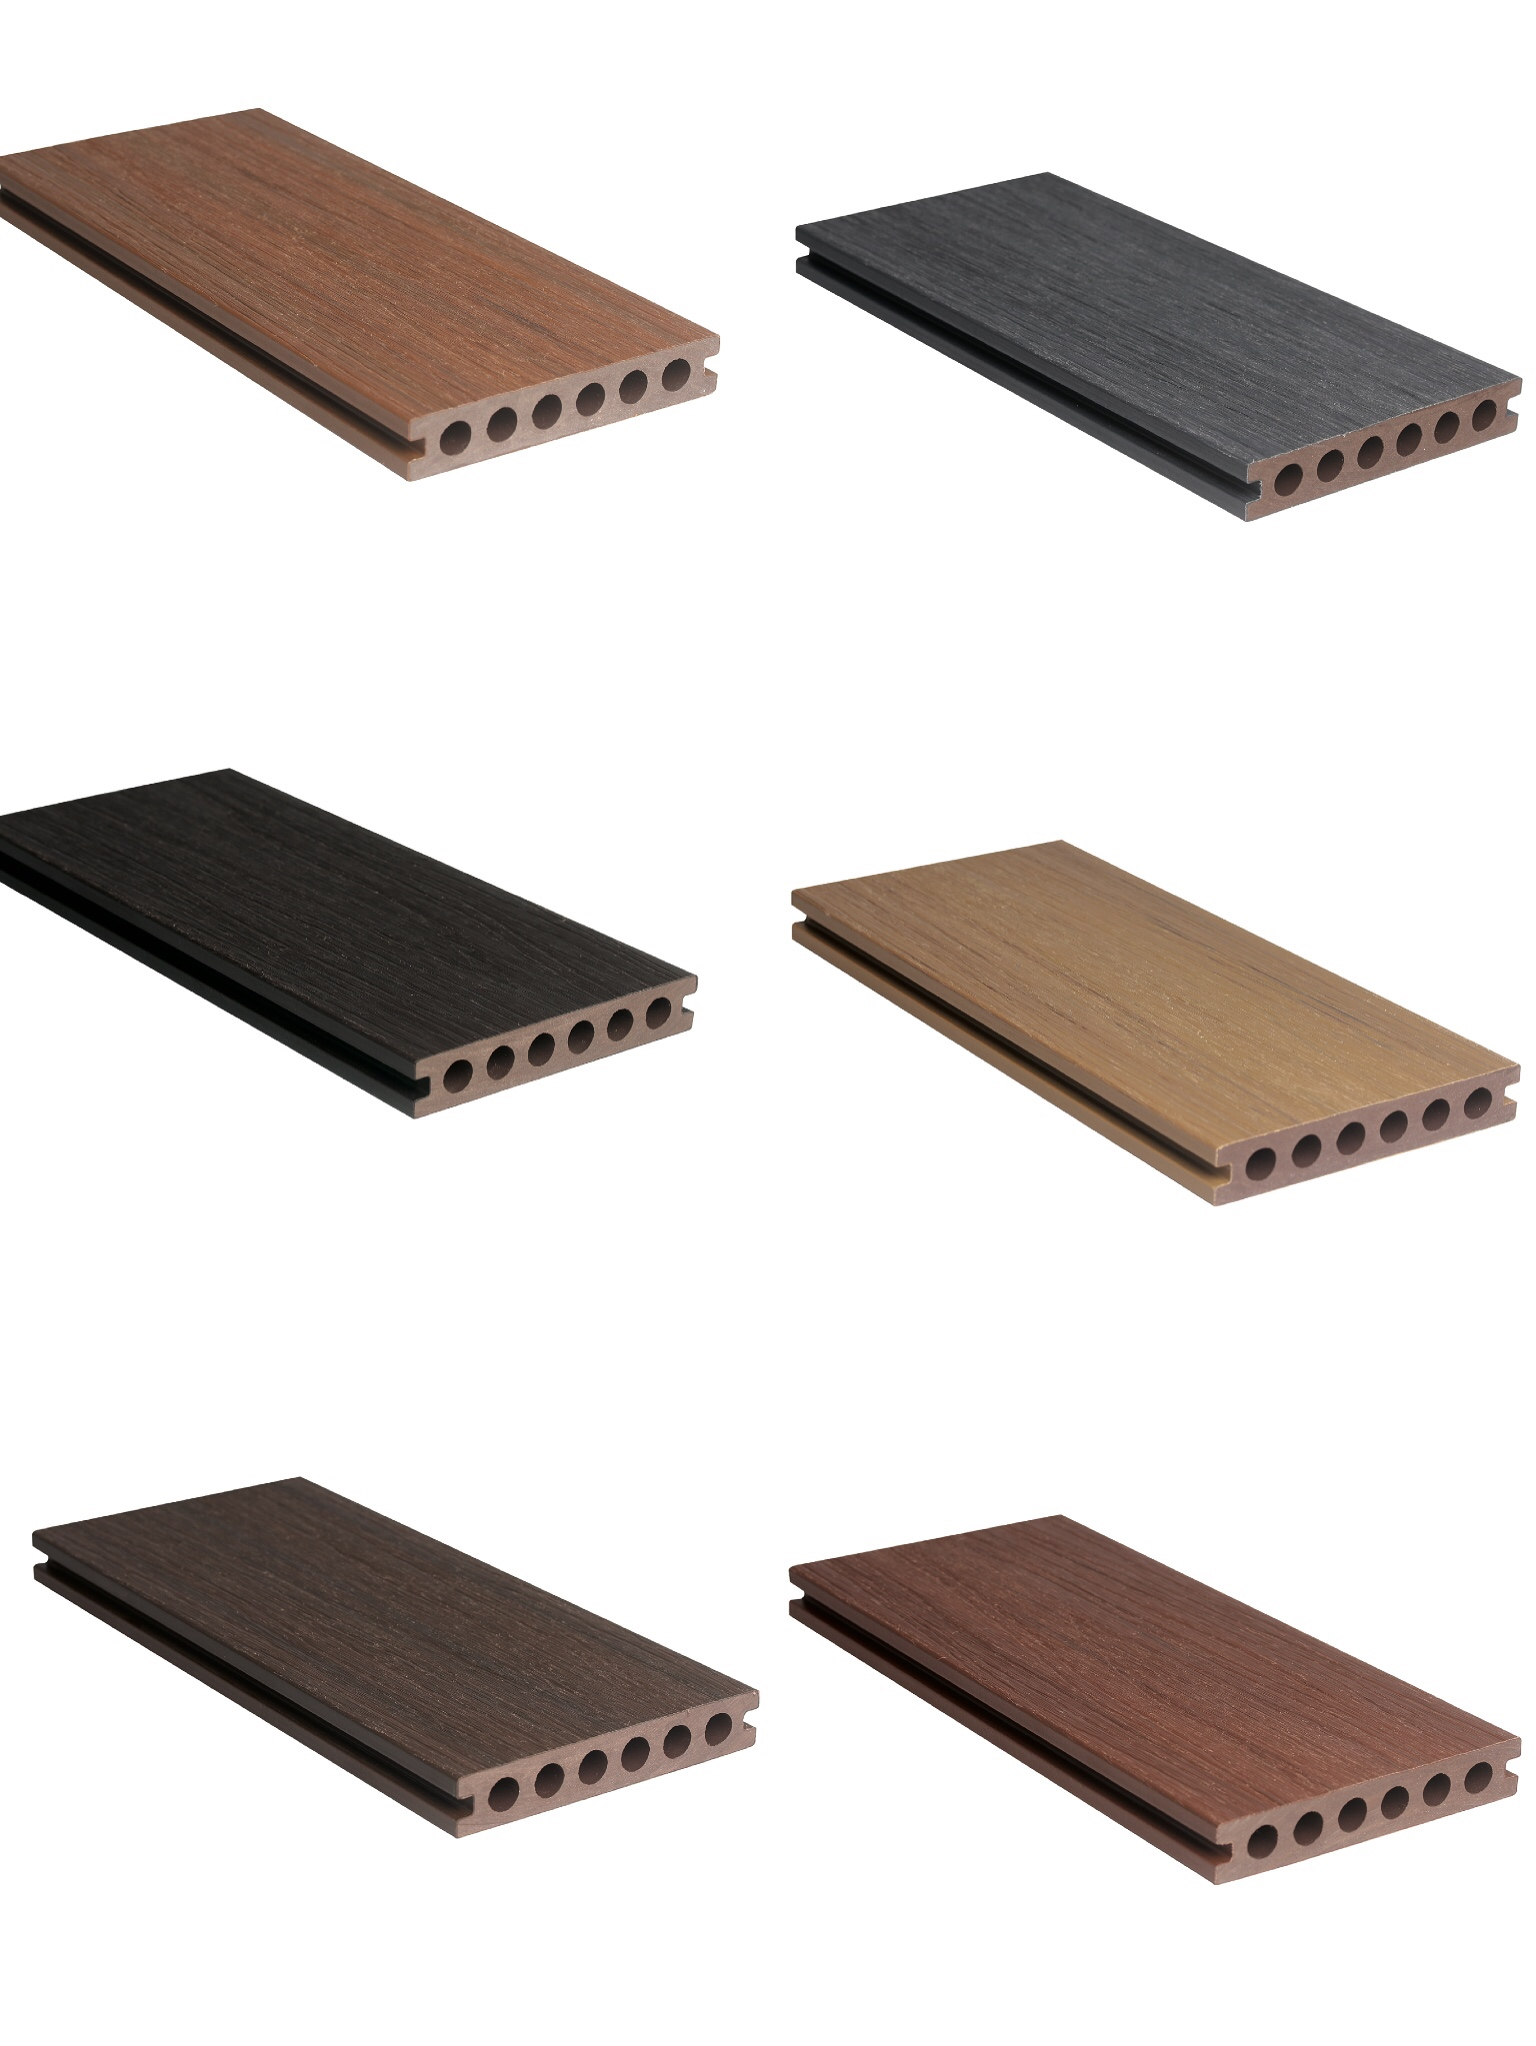 co-extrusion solid wpc decking